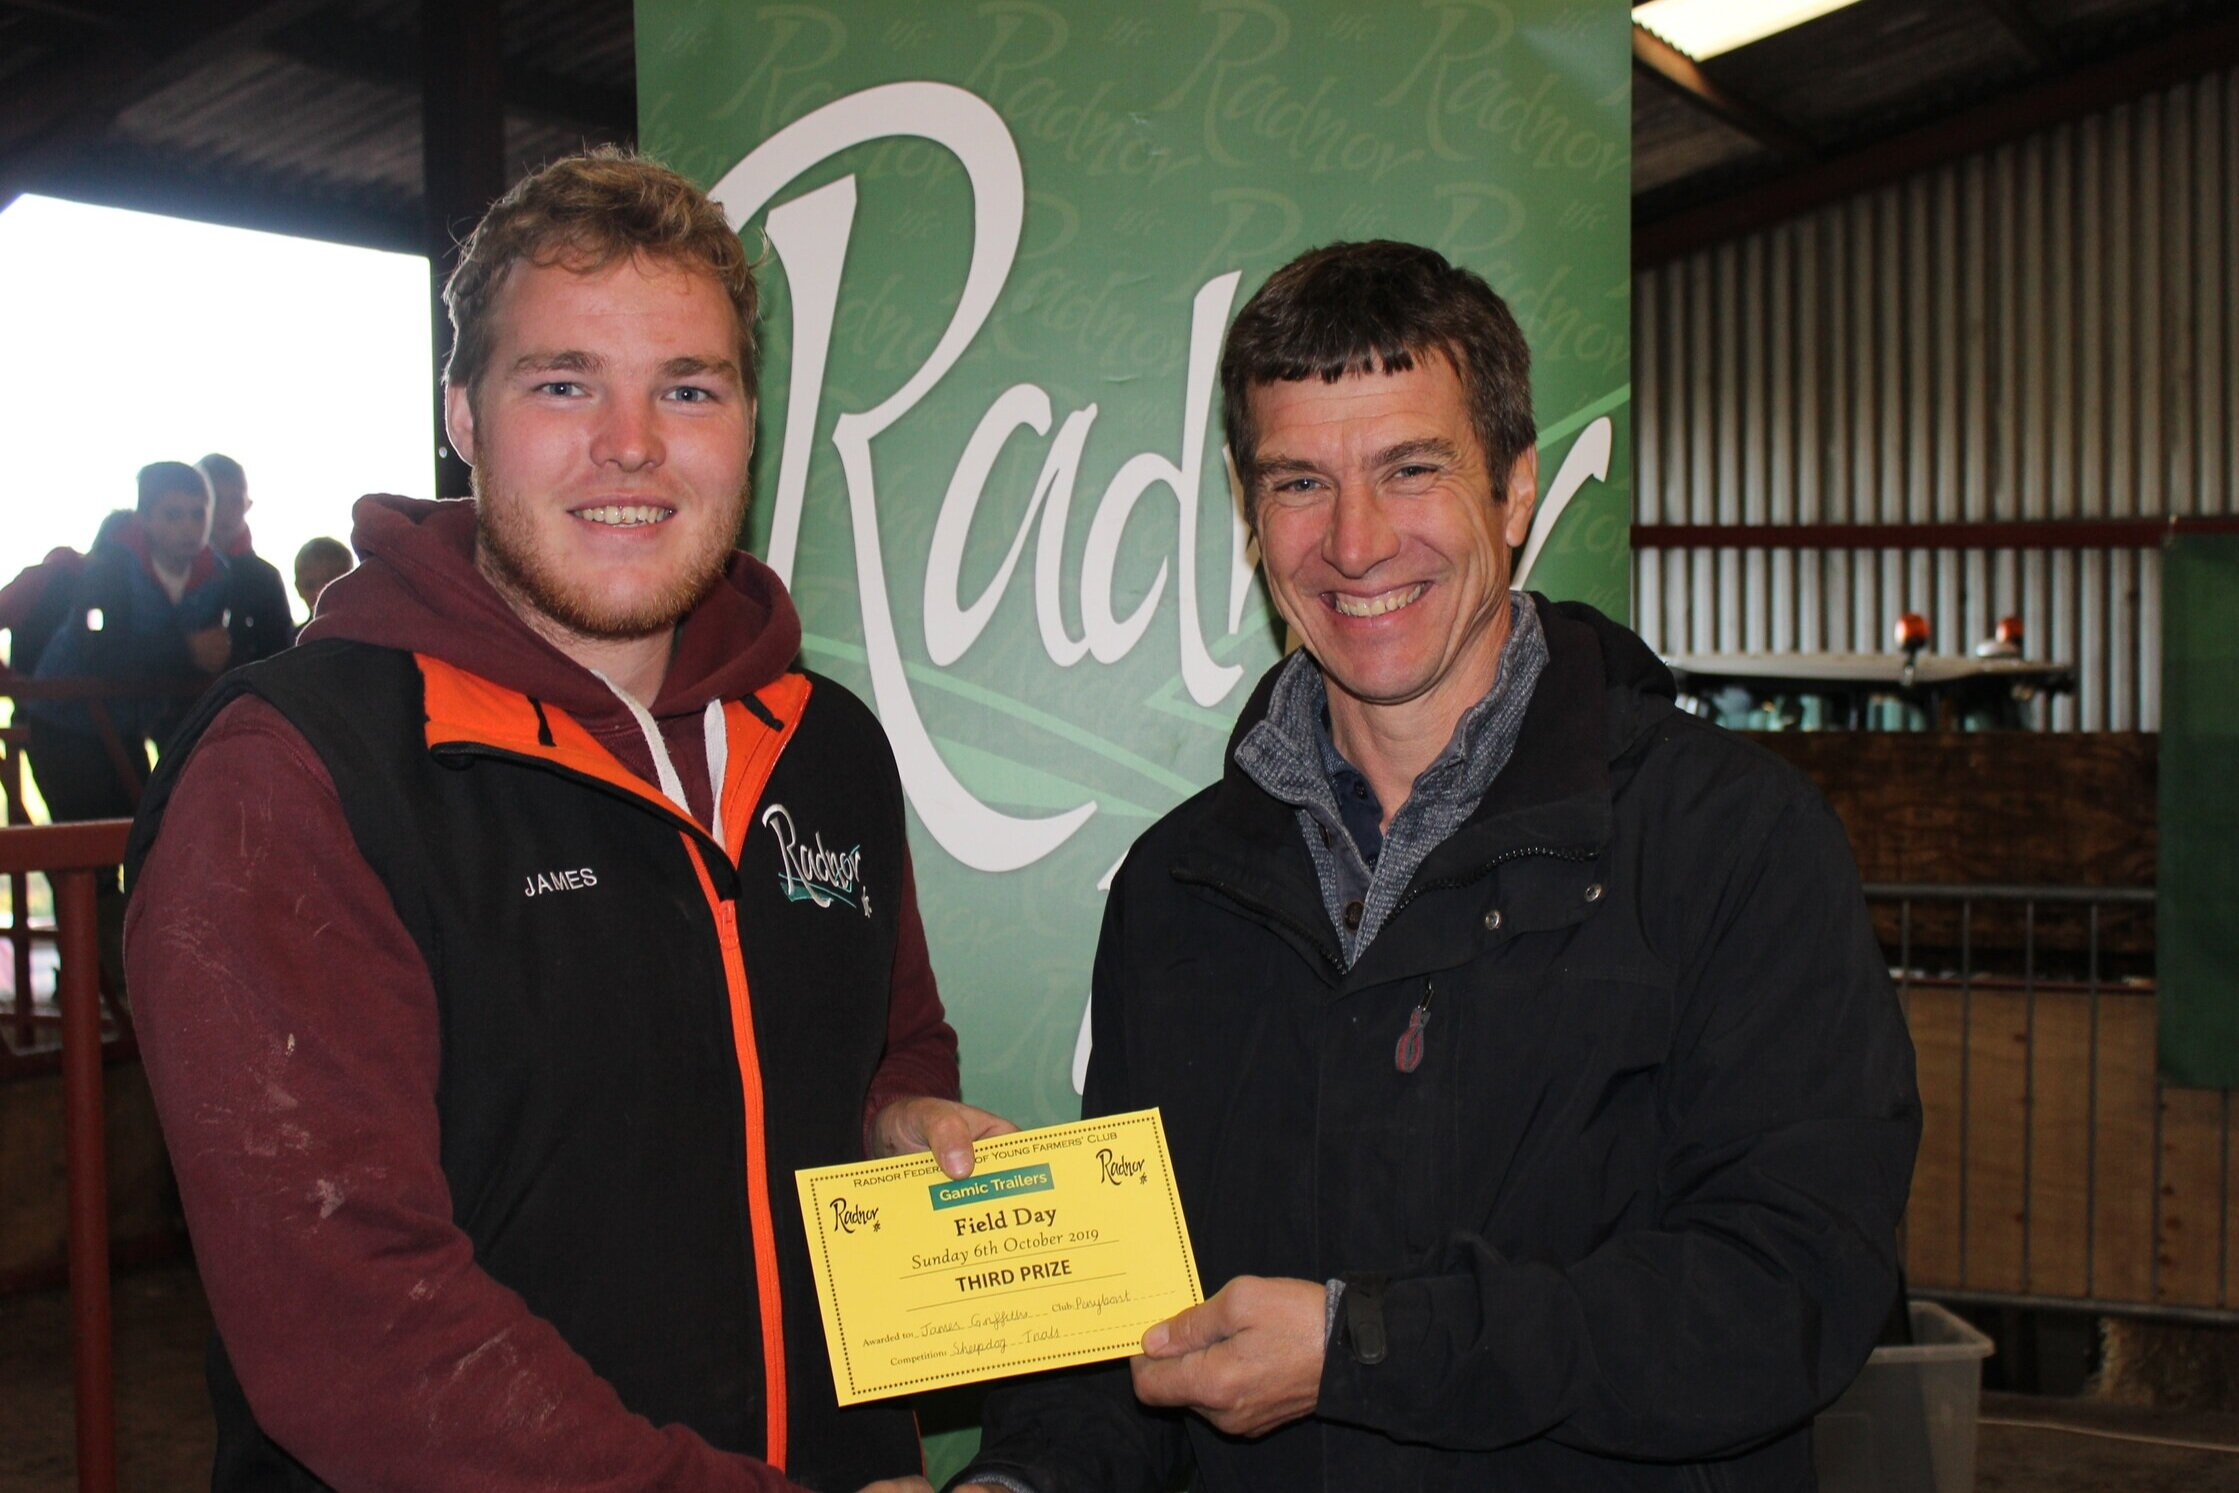 James Griffiths, Penybont YFC - 3rd in the Sheepdog Trials with Mark Watson